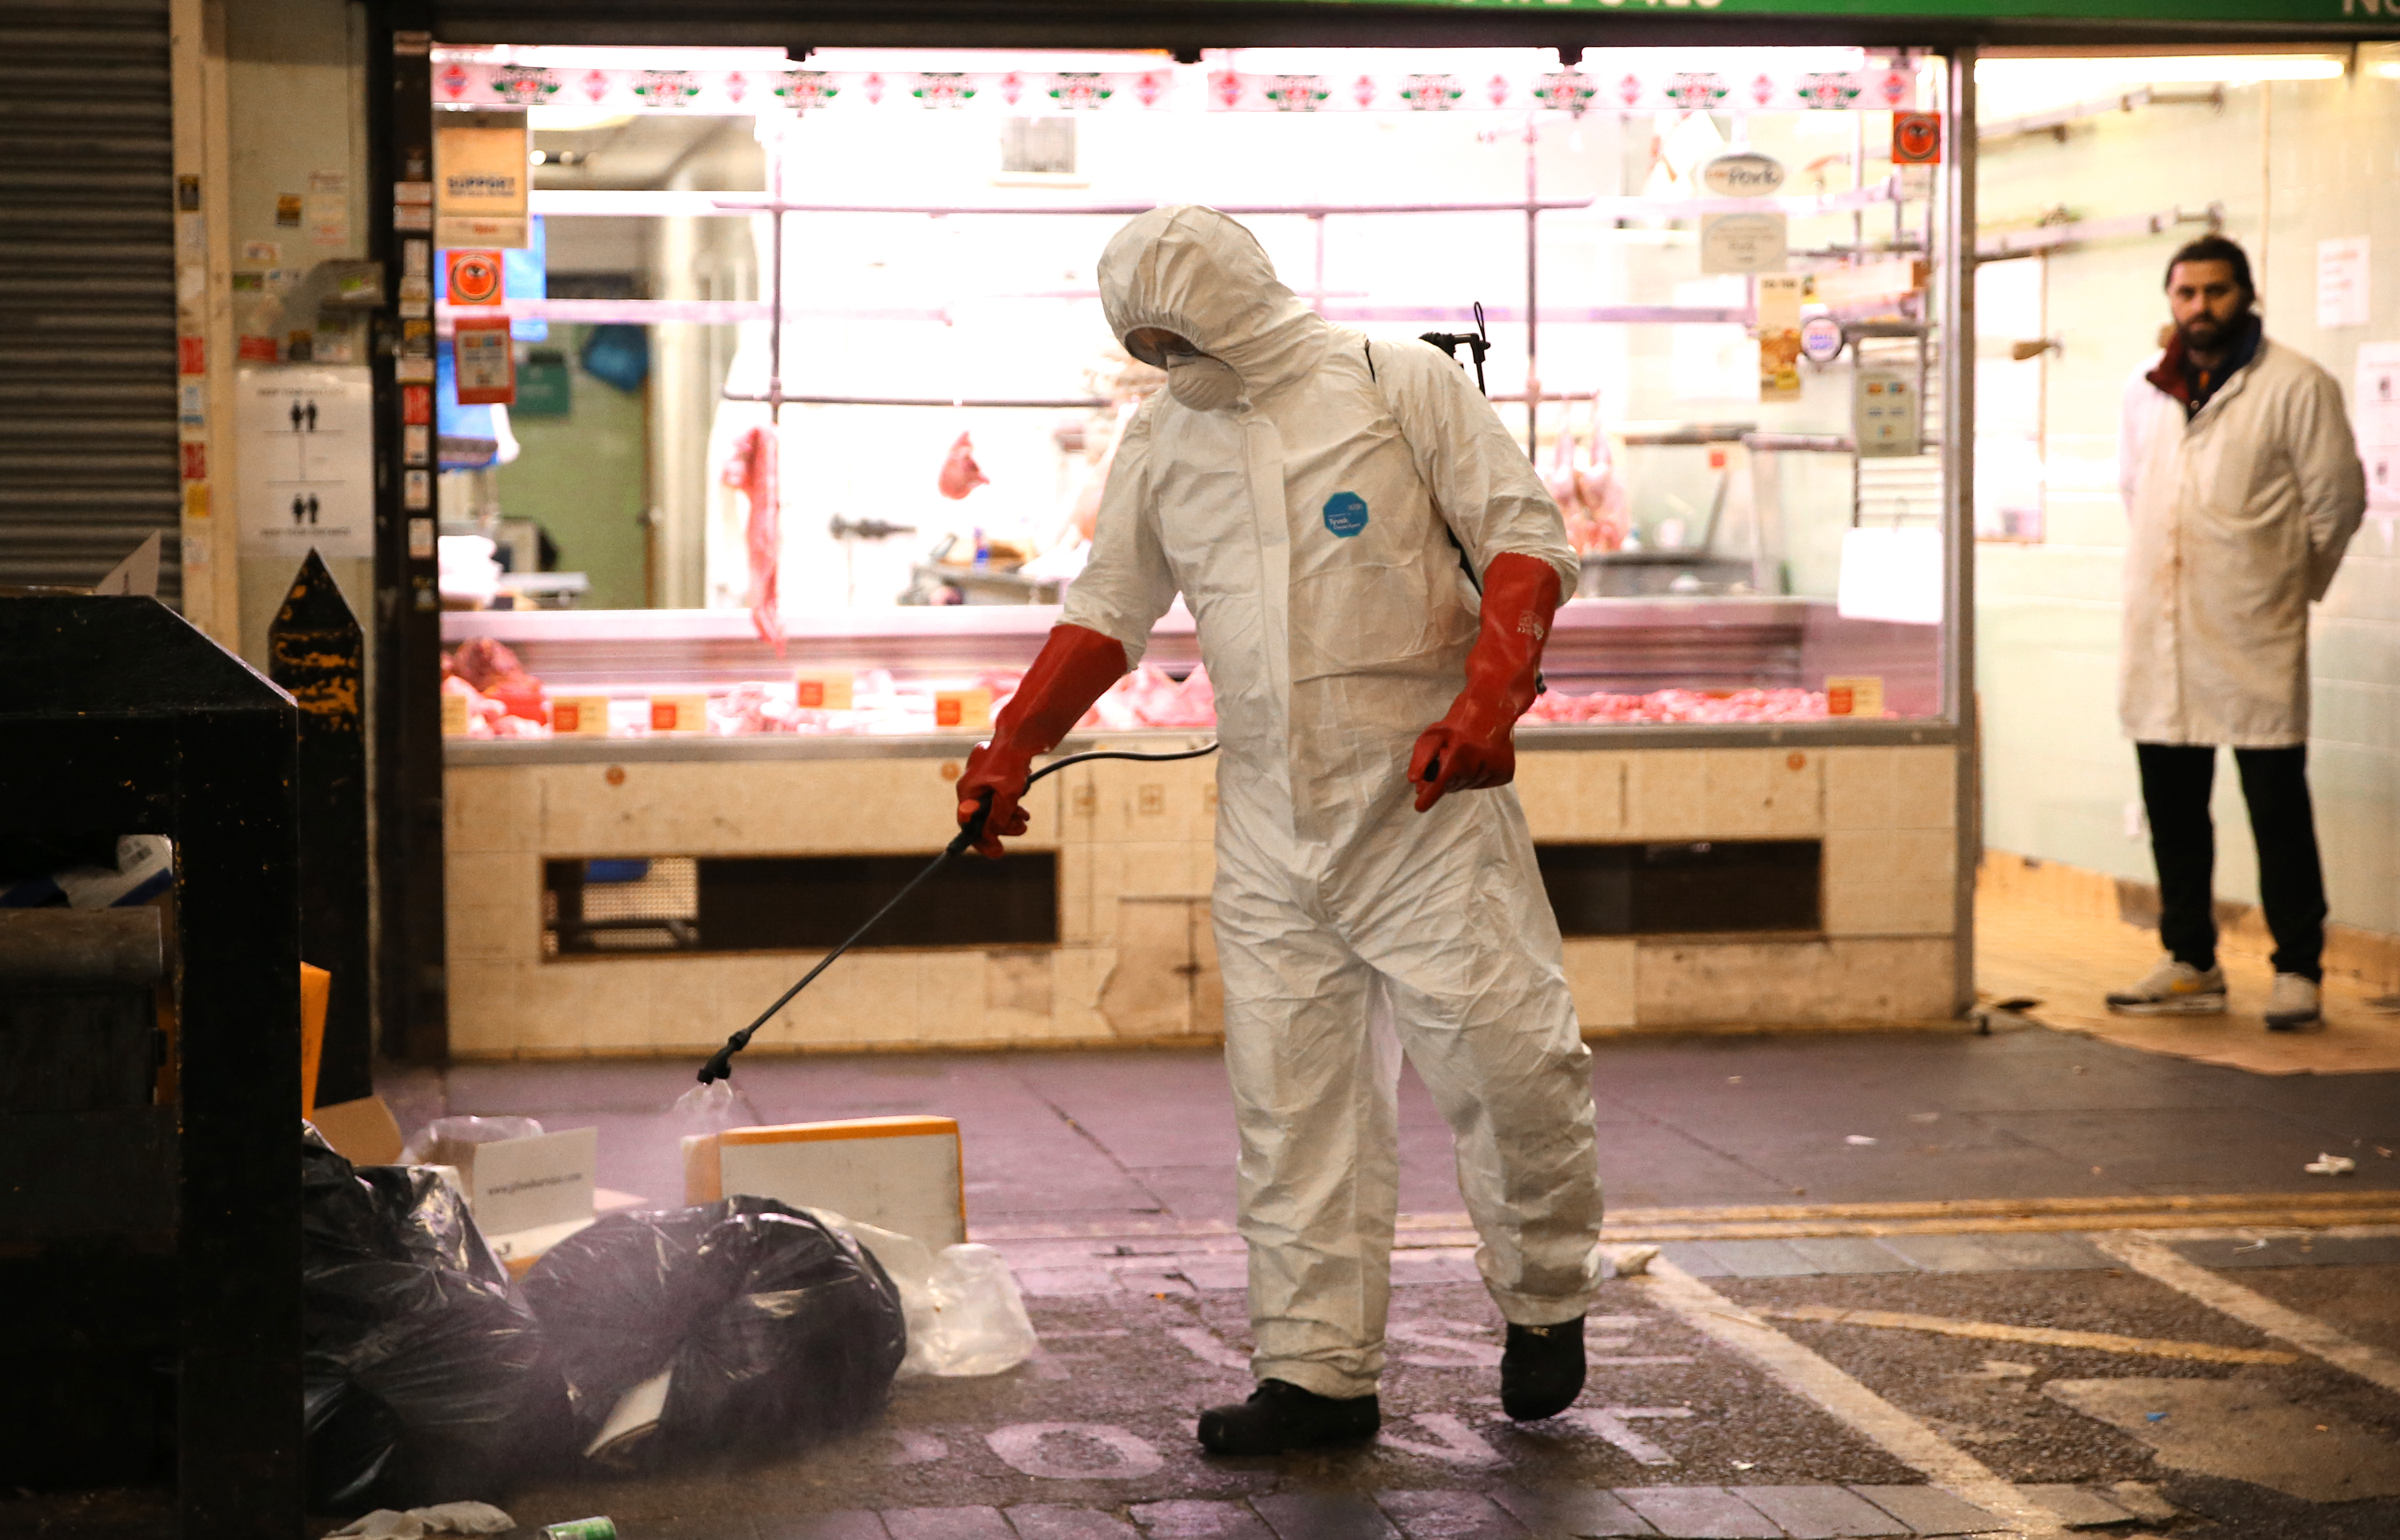 A man wearing a personal protective equipment suit uses a backpack of pressurized spray disinfectant water to remove covid-19 from the street at Queens Market in Upton Park, east London, as the UK continues in lockdown to help curb the spread of the coronavirus. Picture date: Tuesday April 28, 2020.